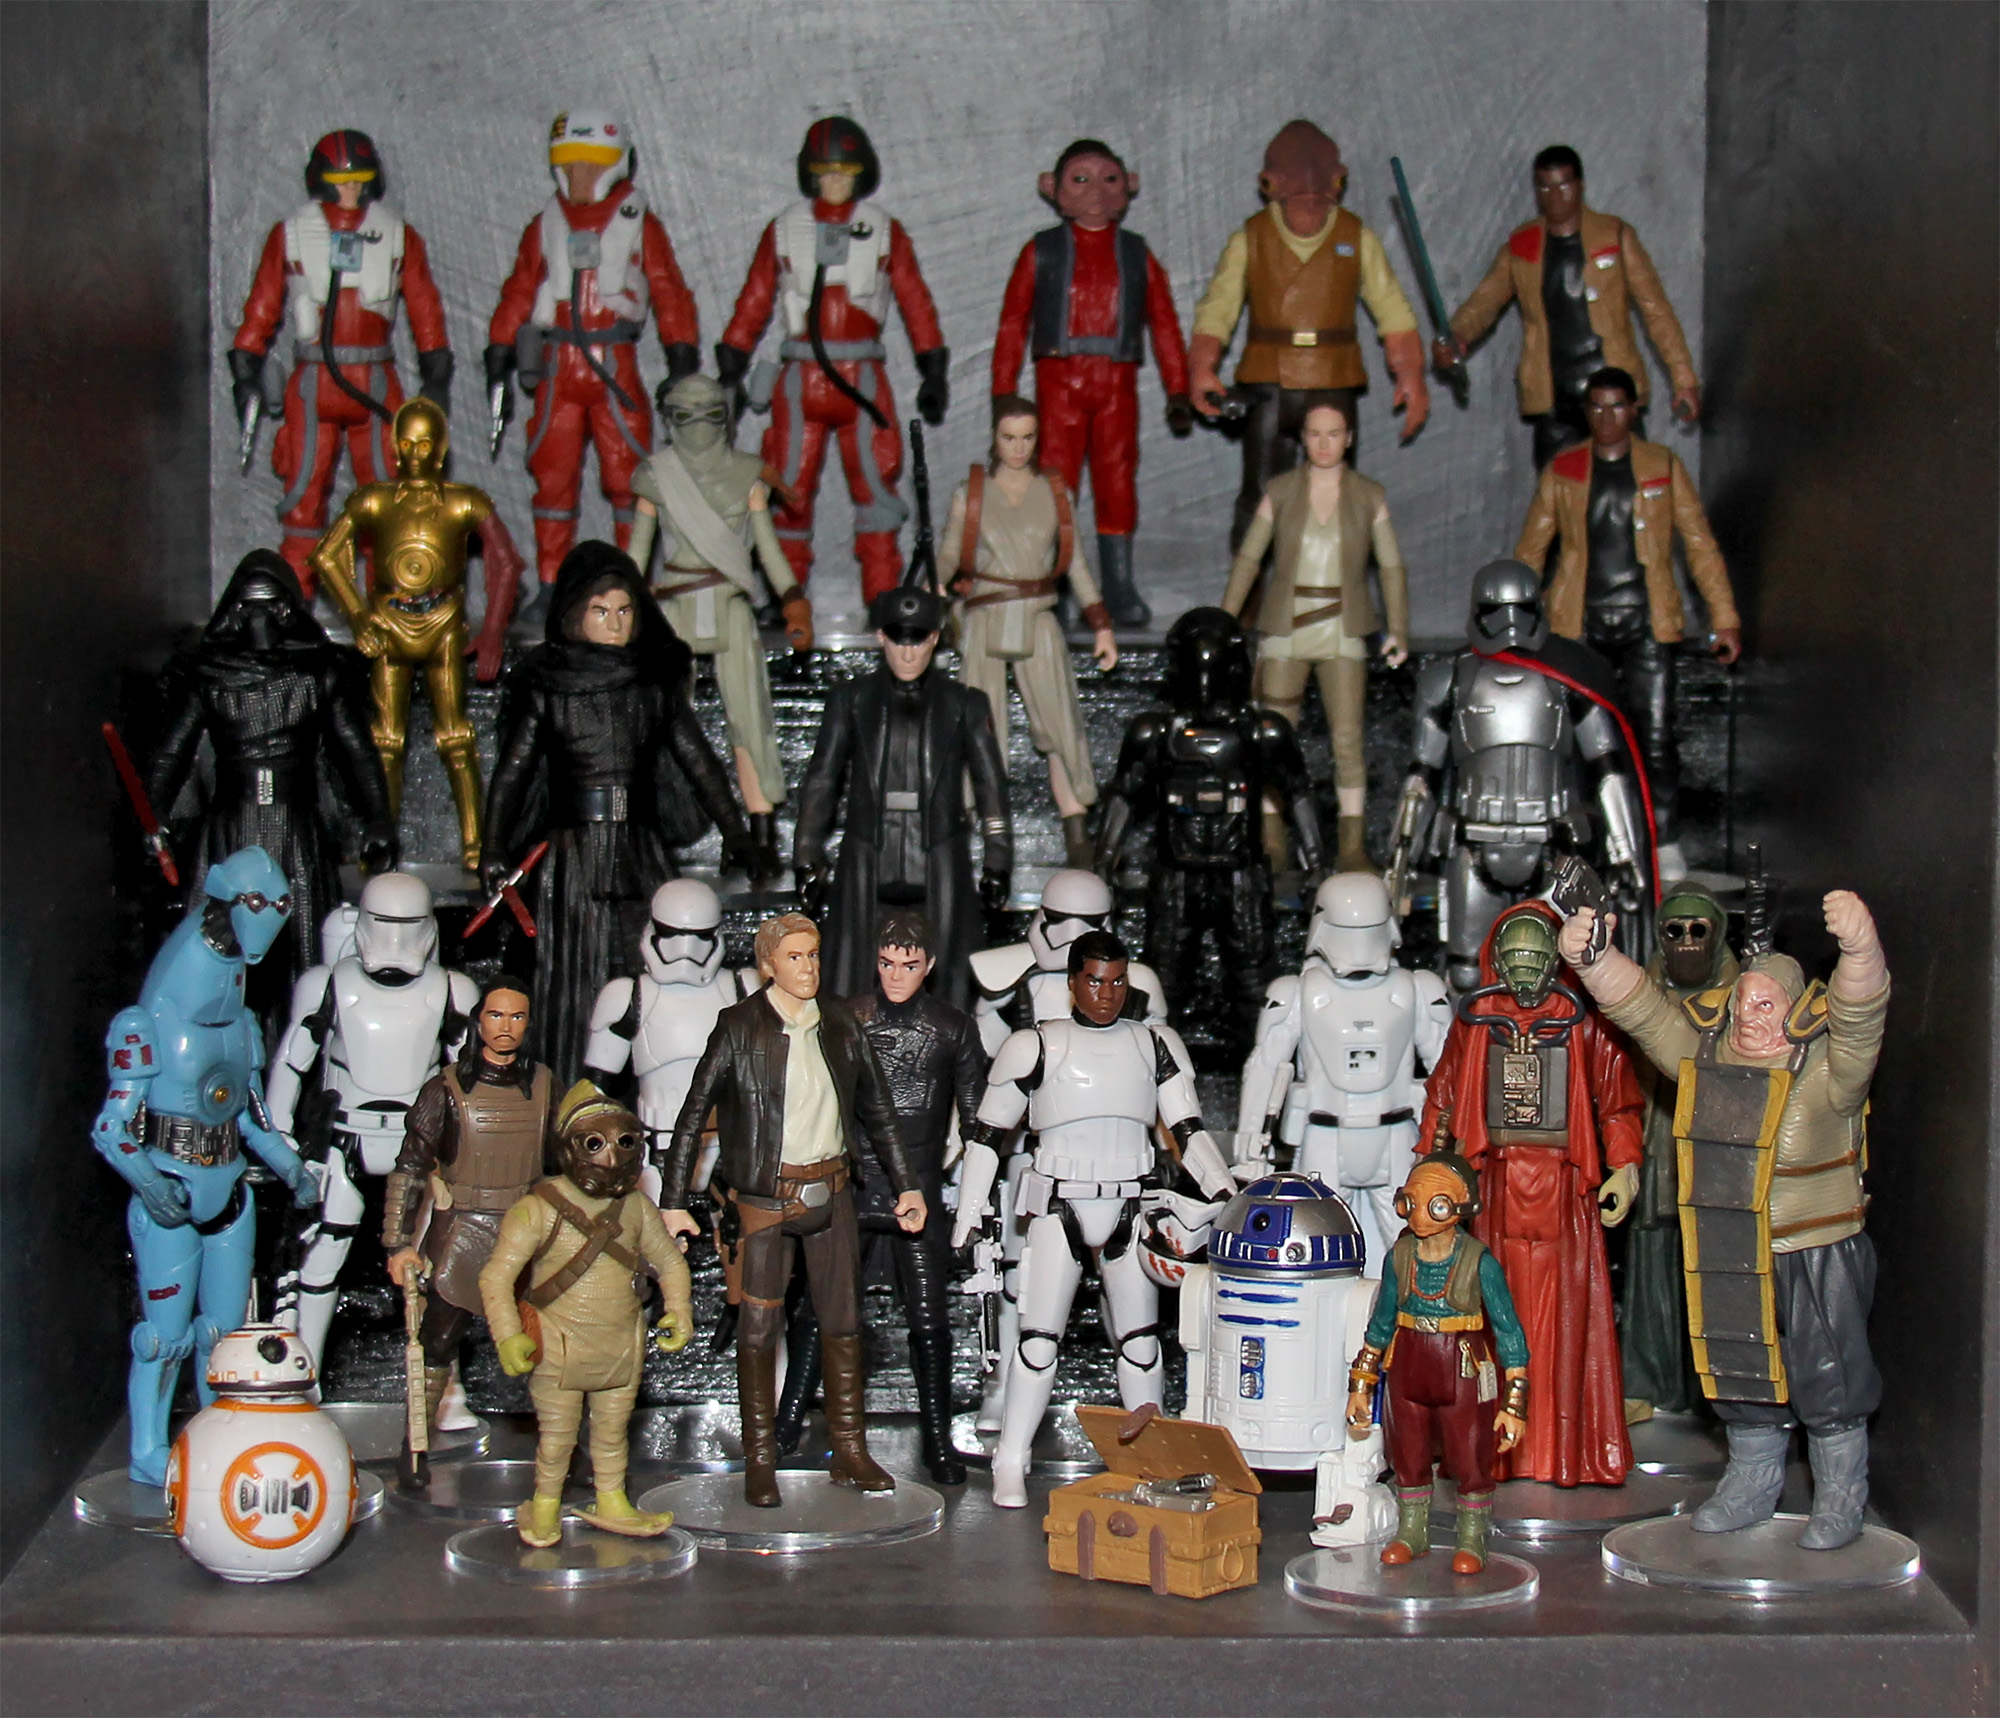 The Force Awakens action figure display